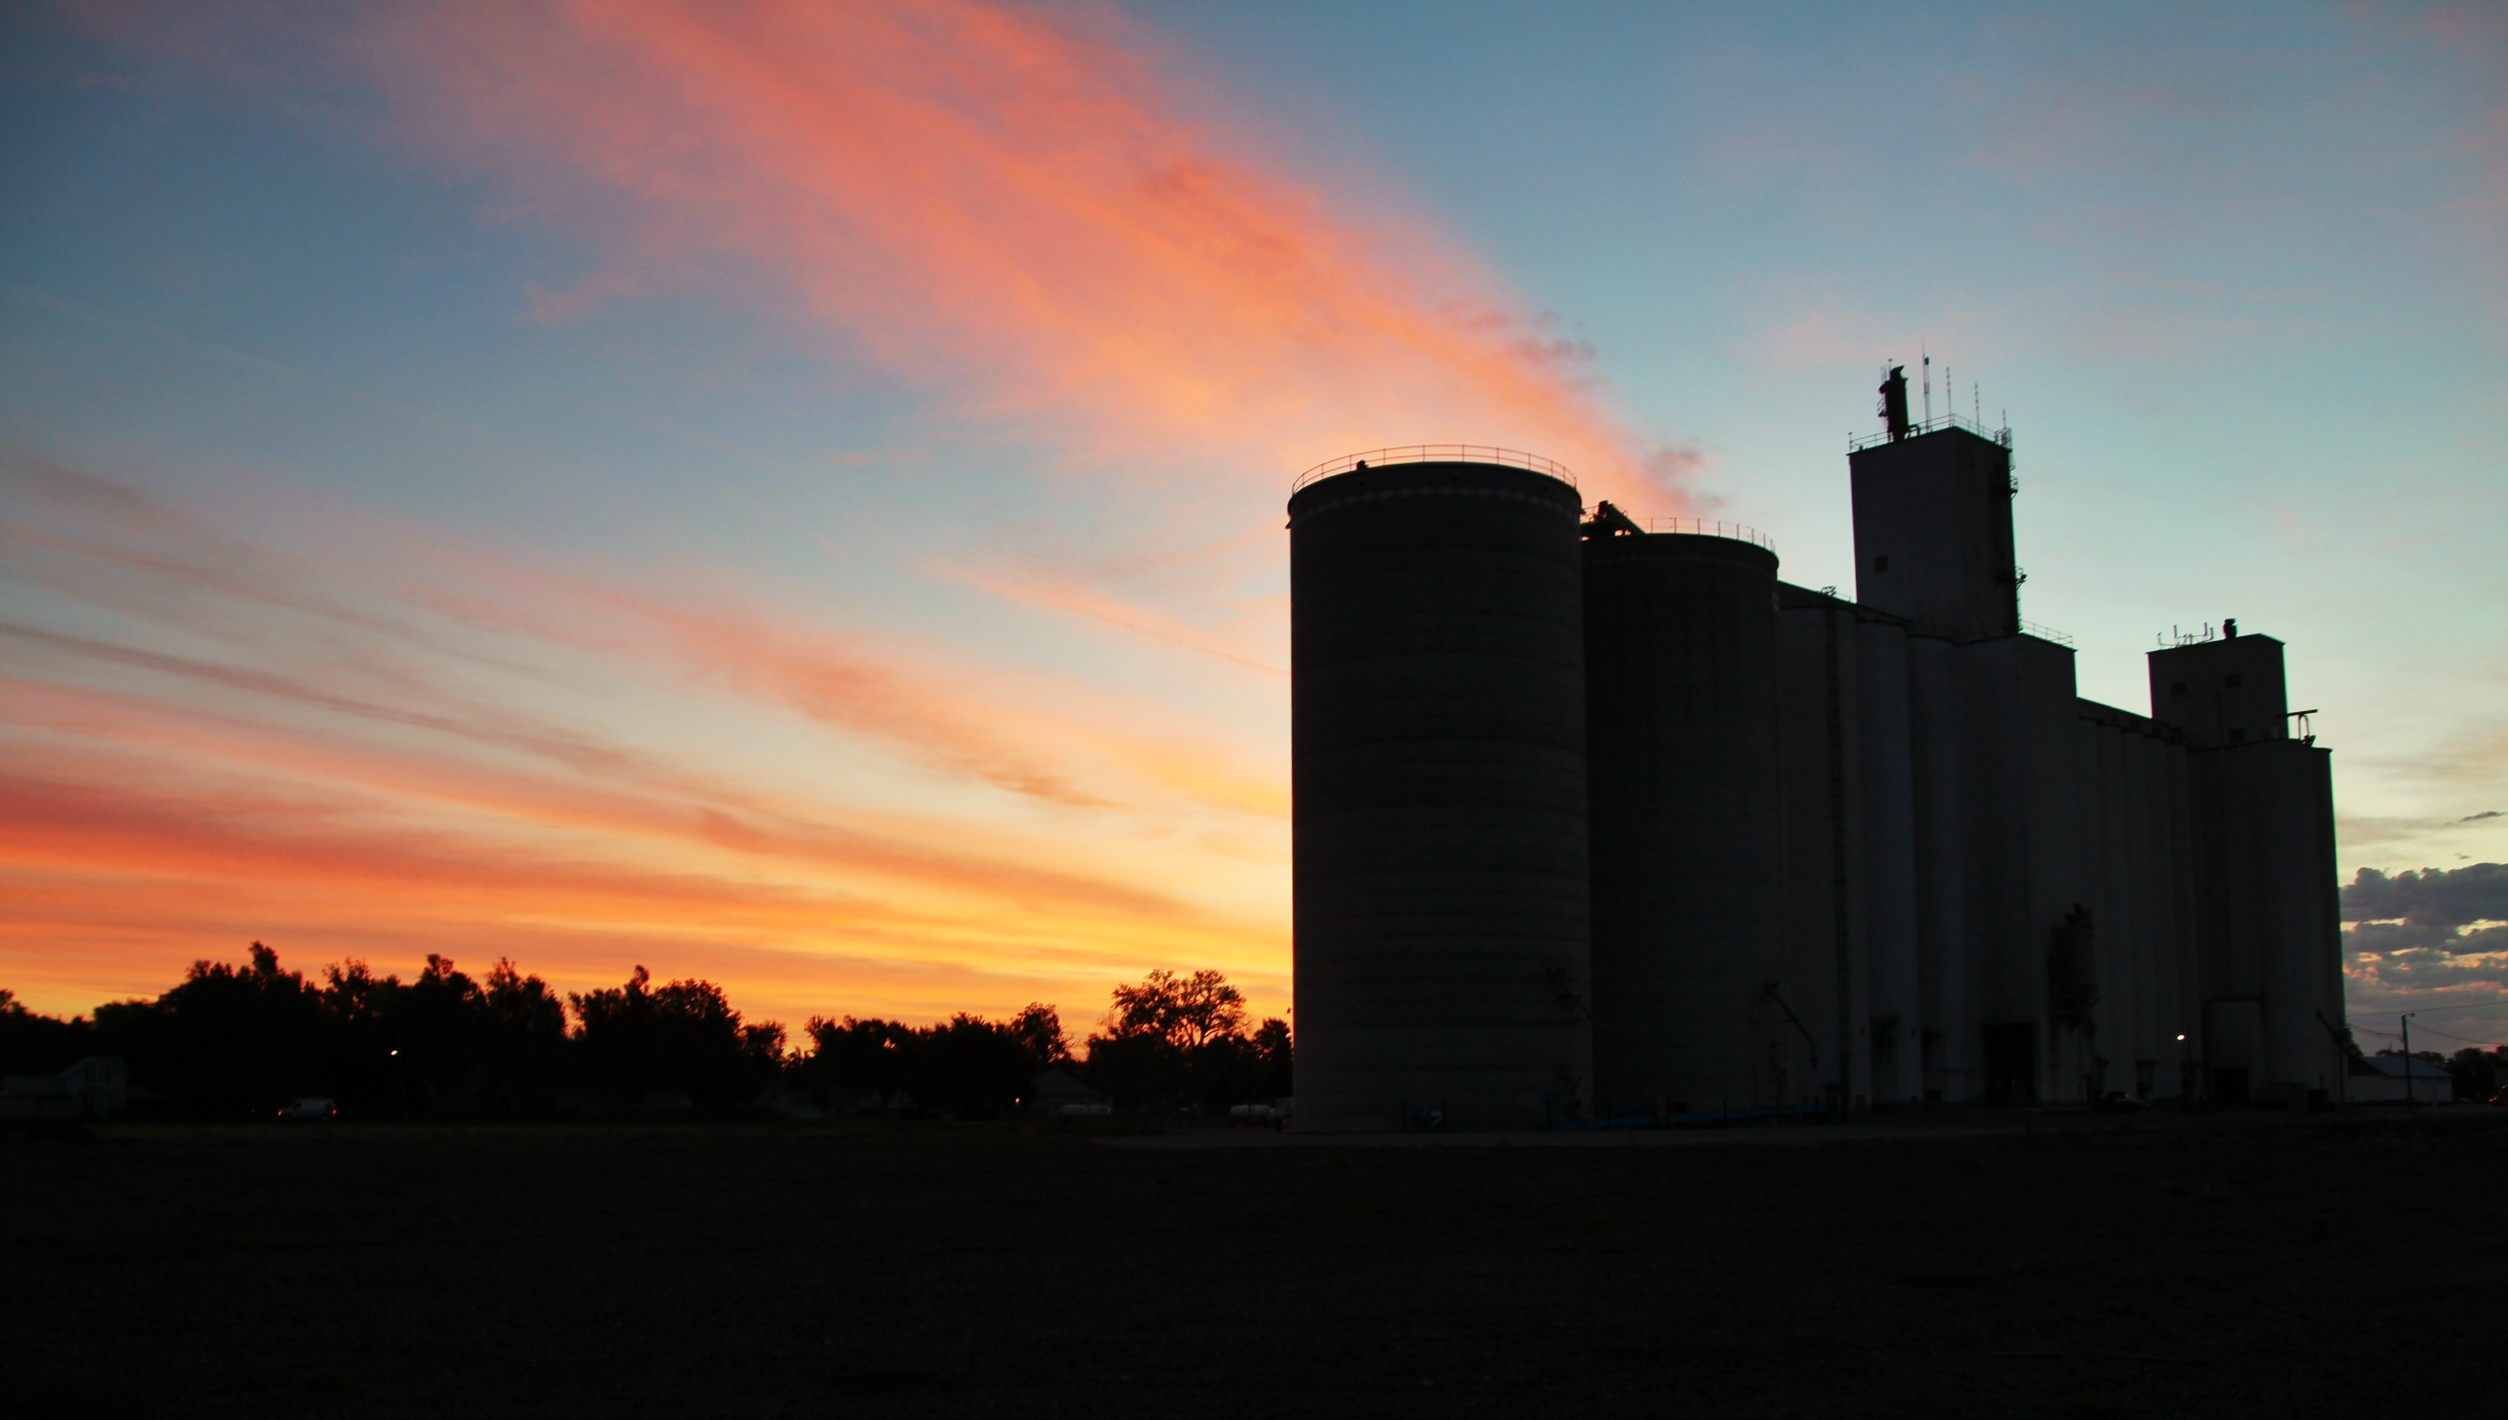 Typical Kansas grain elevator; this one is in Nickerson. Photo was taken at sunrise. (Photo by J. Schafer)